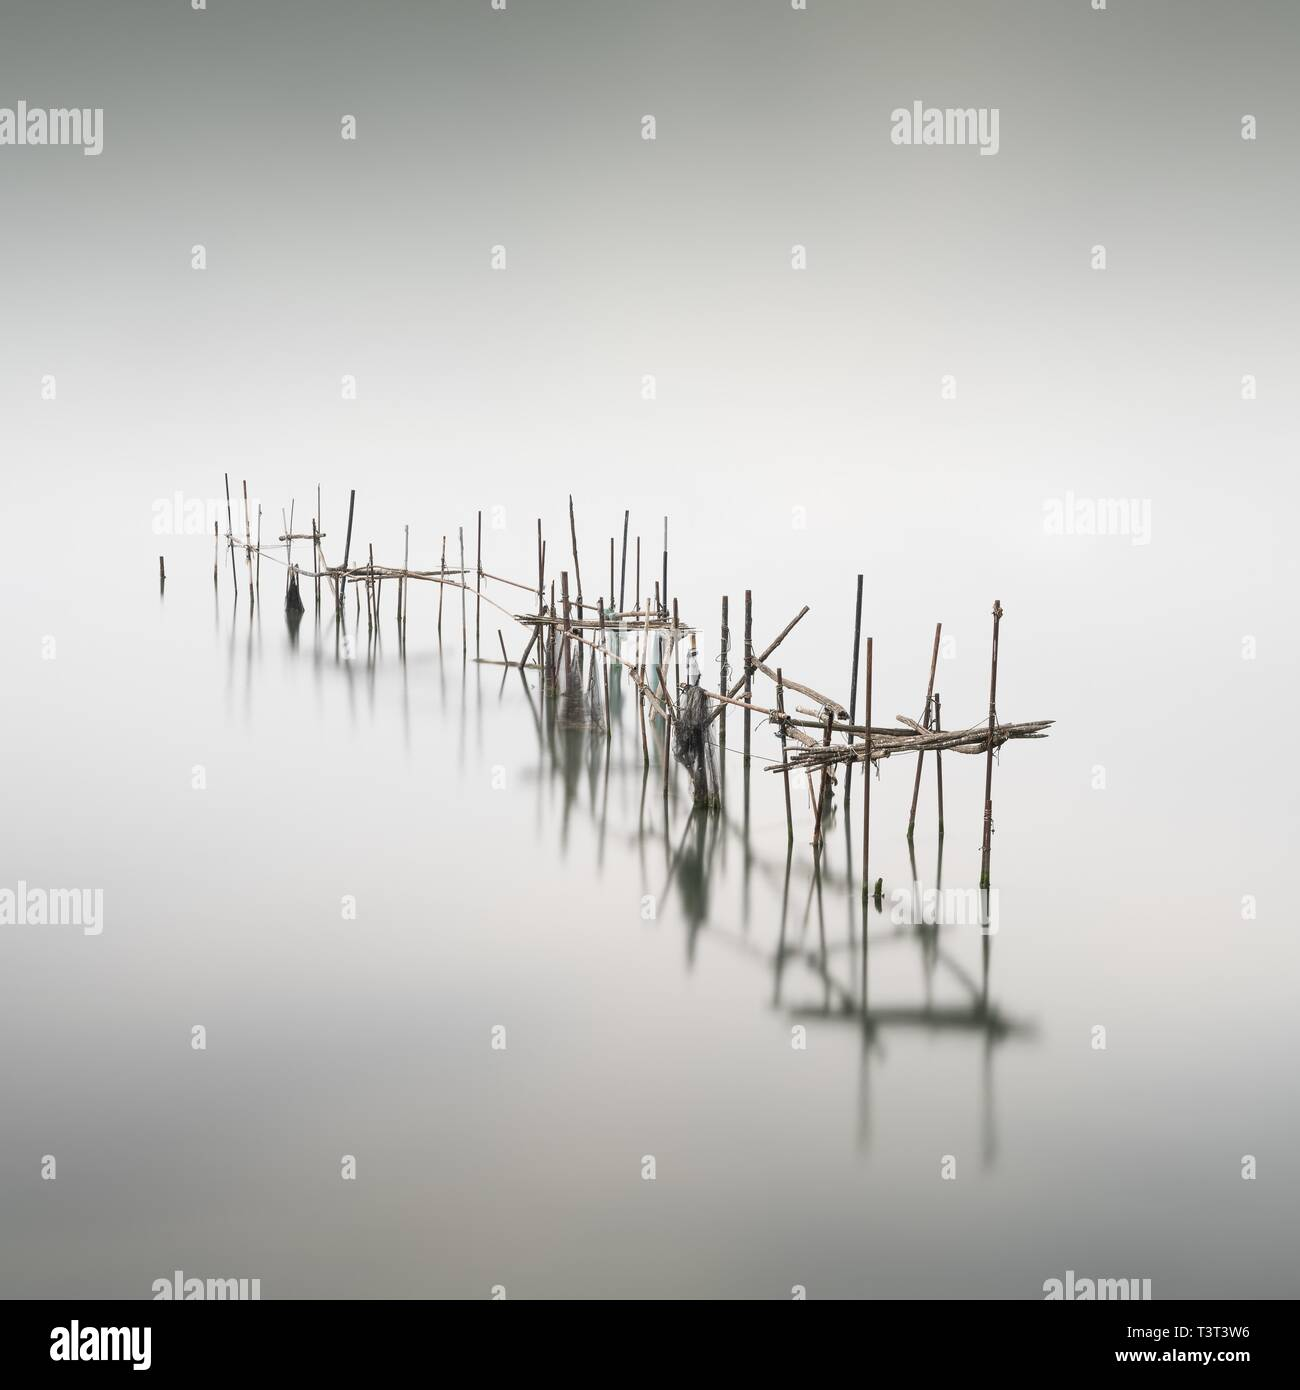 Fishing nets at the Ponte della Liberta, Venice, Italy - Stock Image